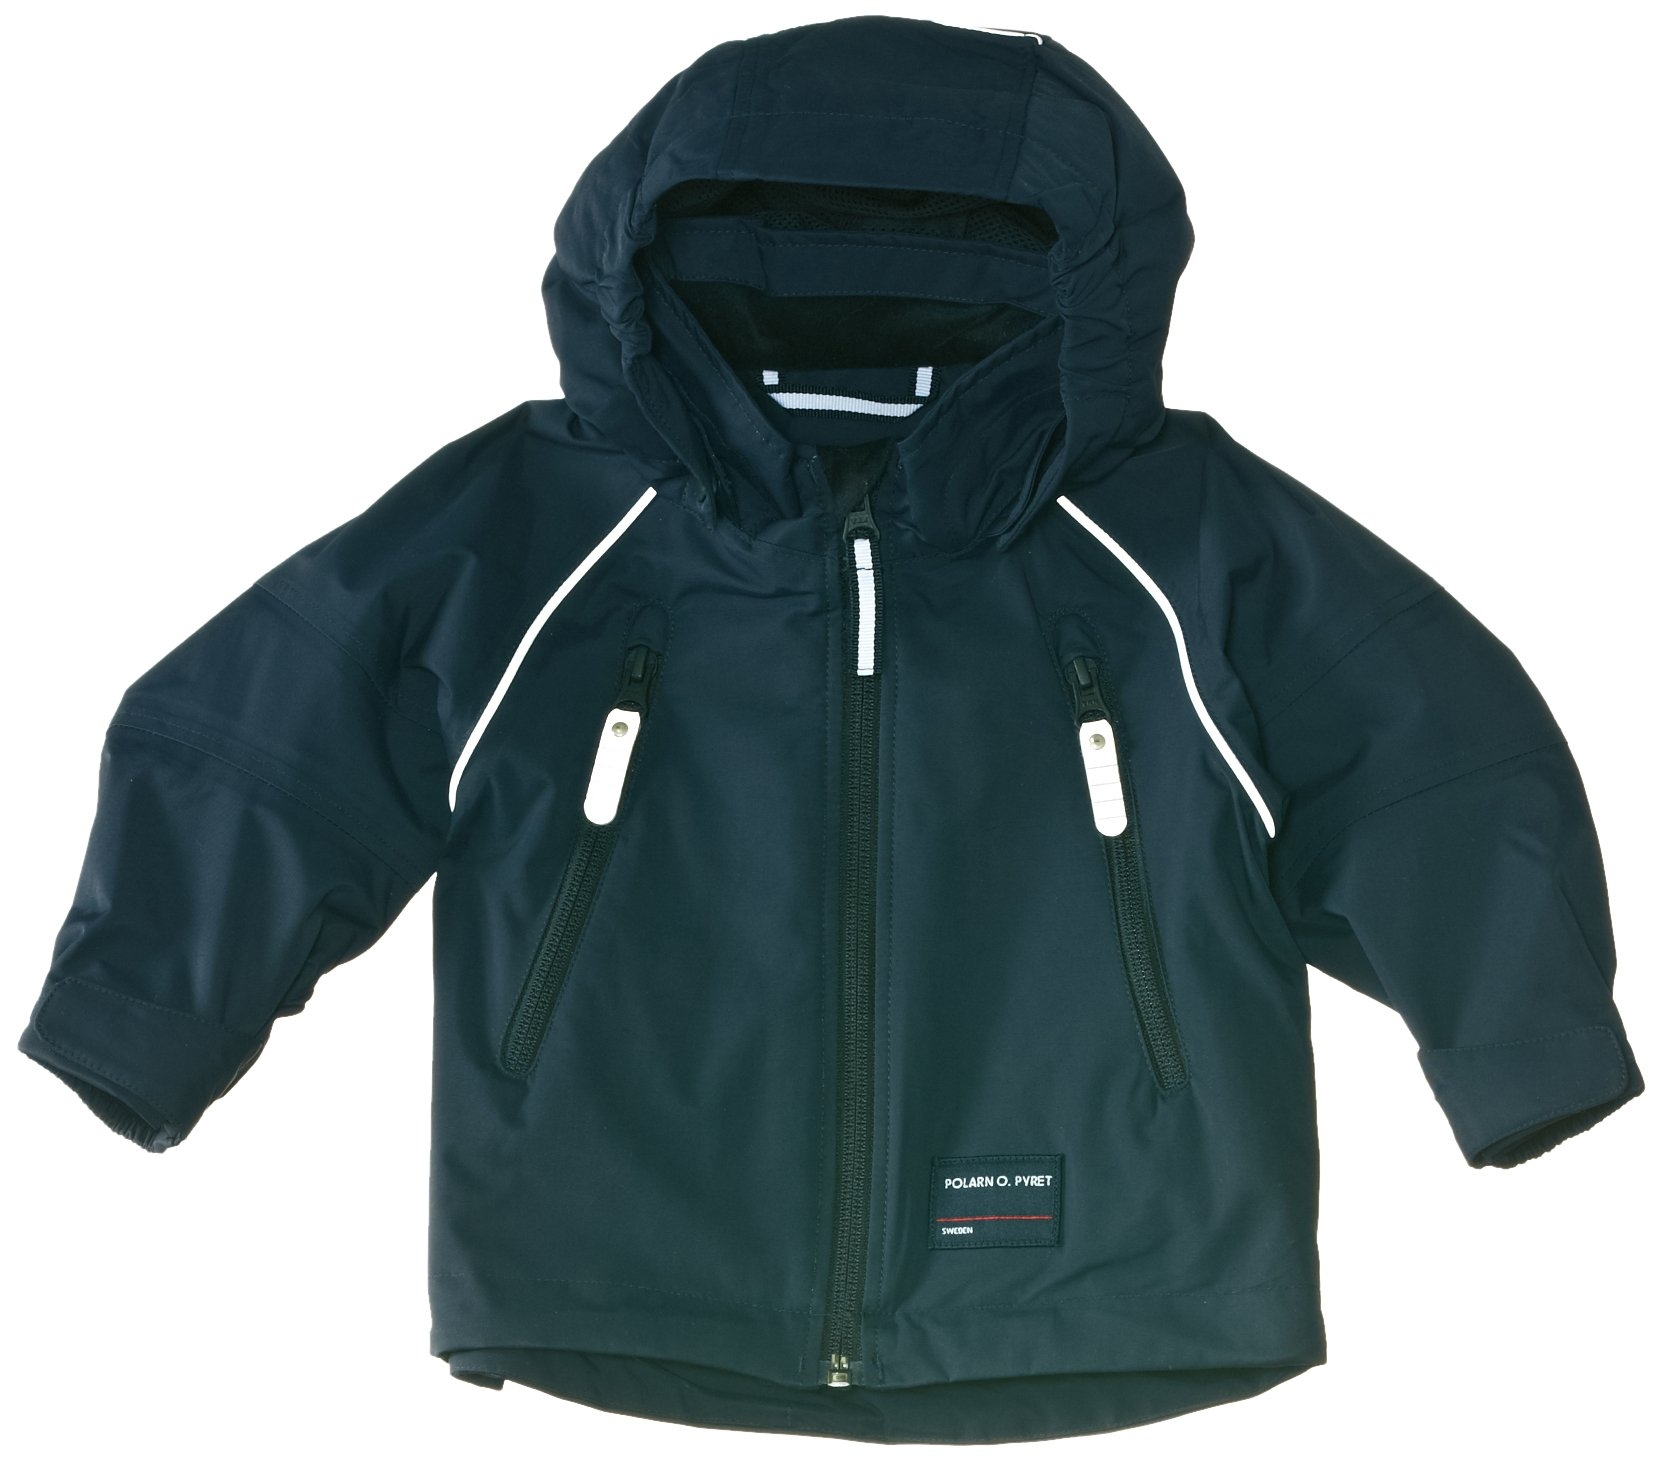 POLARN O. PYRET BEST BASIC WATERPROOF ECO SHELL JACKET (BABY) - 9-12 M/Navy by Polarn O. Pyret